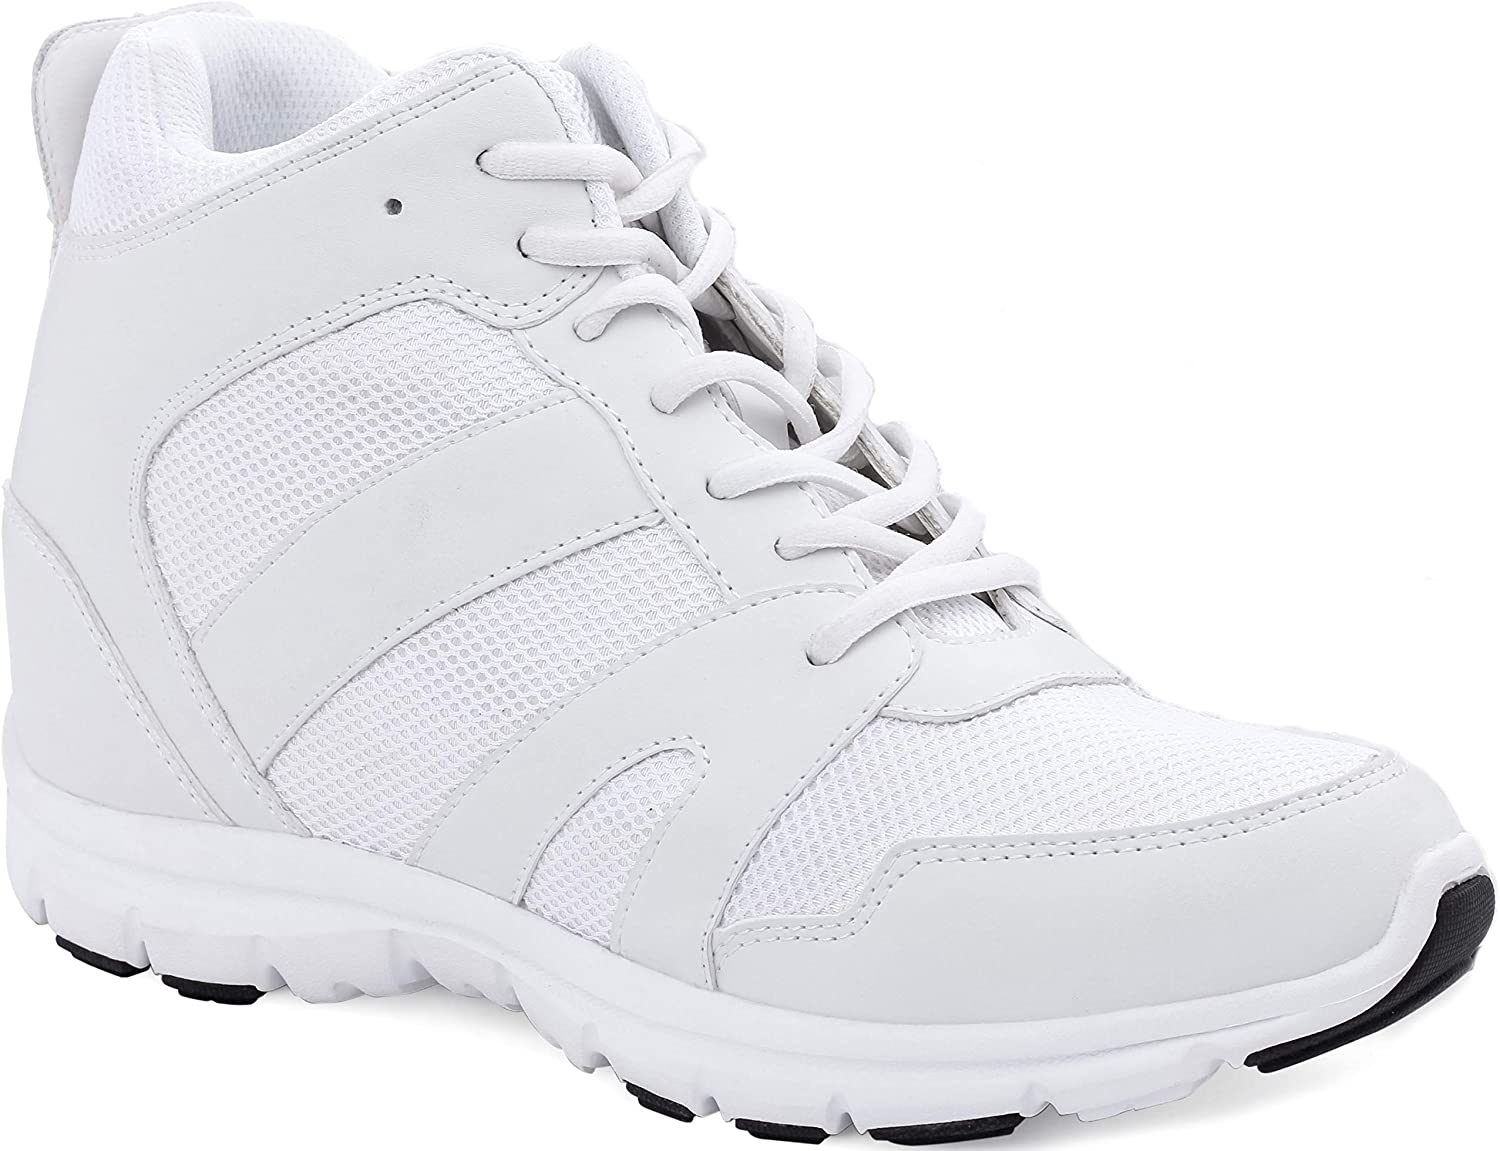 CALTO mart Men's Invisible Height Increasing L Elevator Shoes - White Manufacturer direct delivery